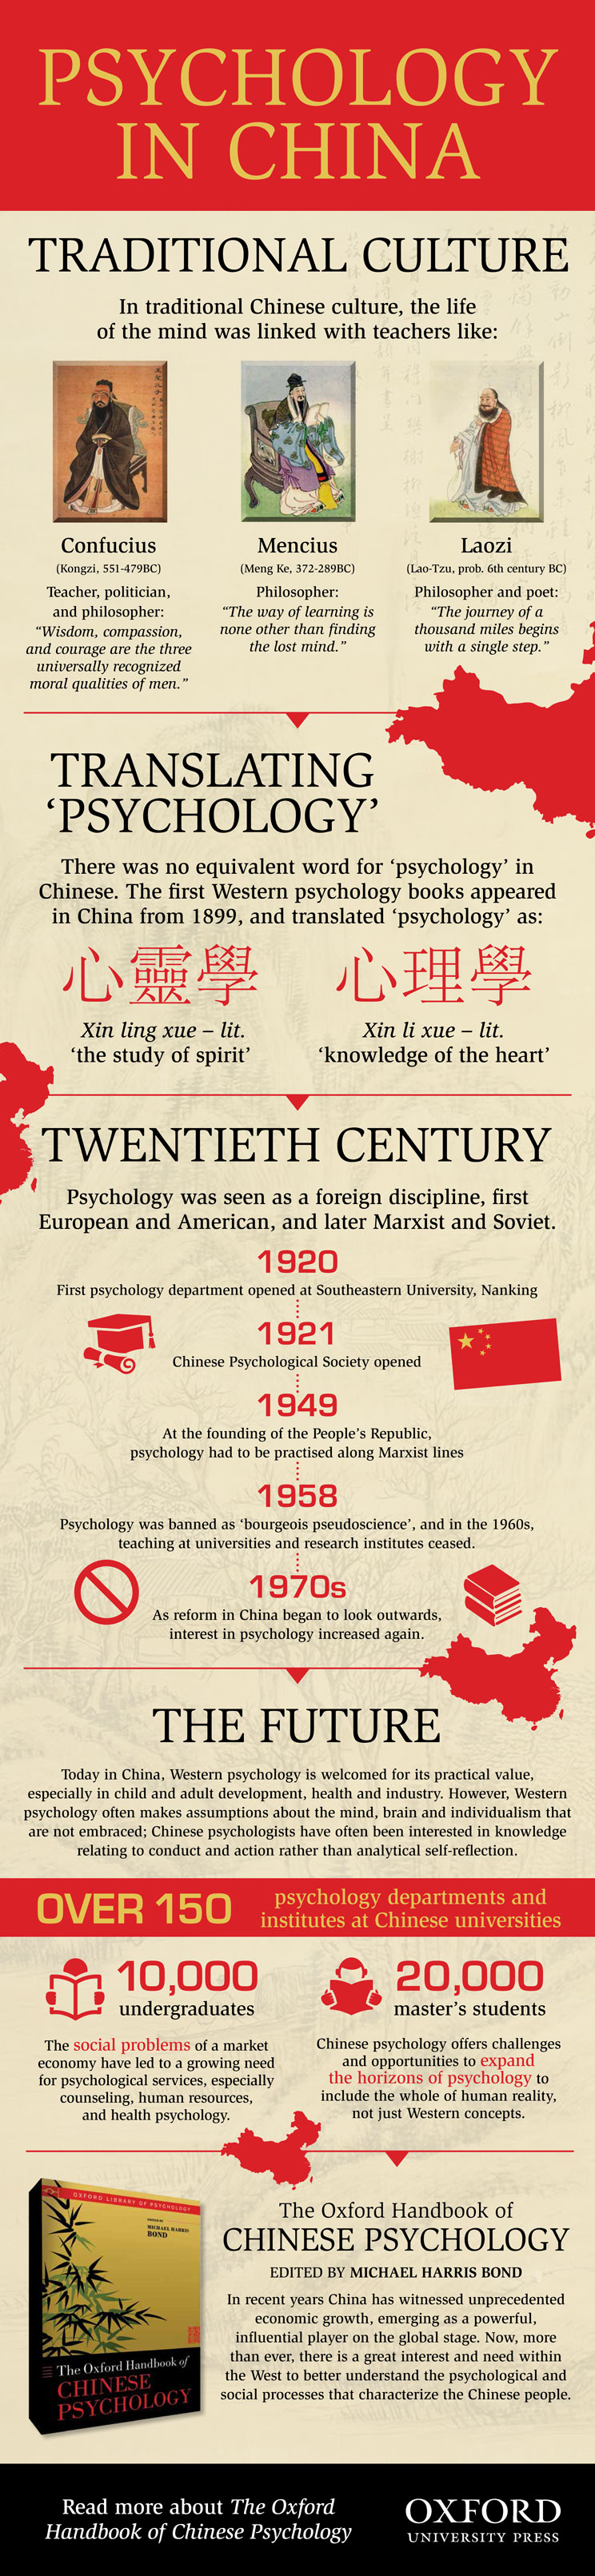 744-OH-Chinese-Psychology-Infographic-v3-2